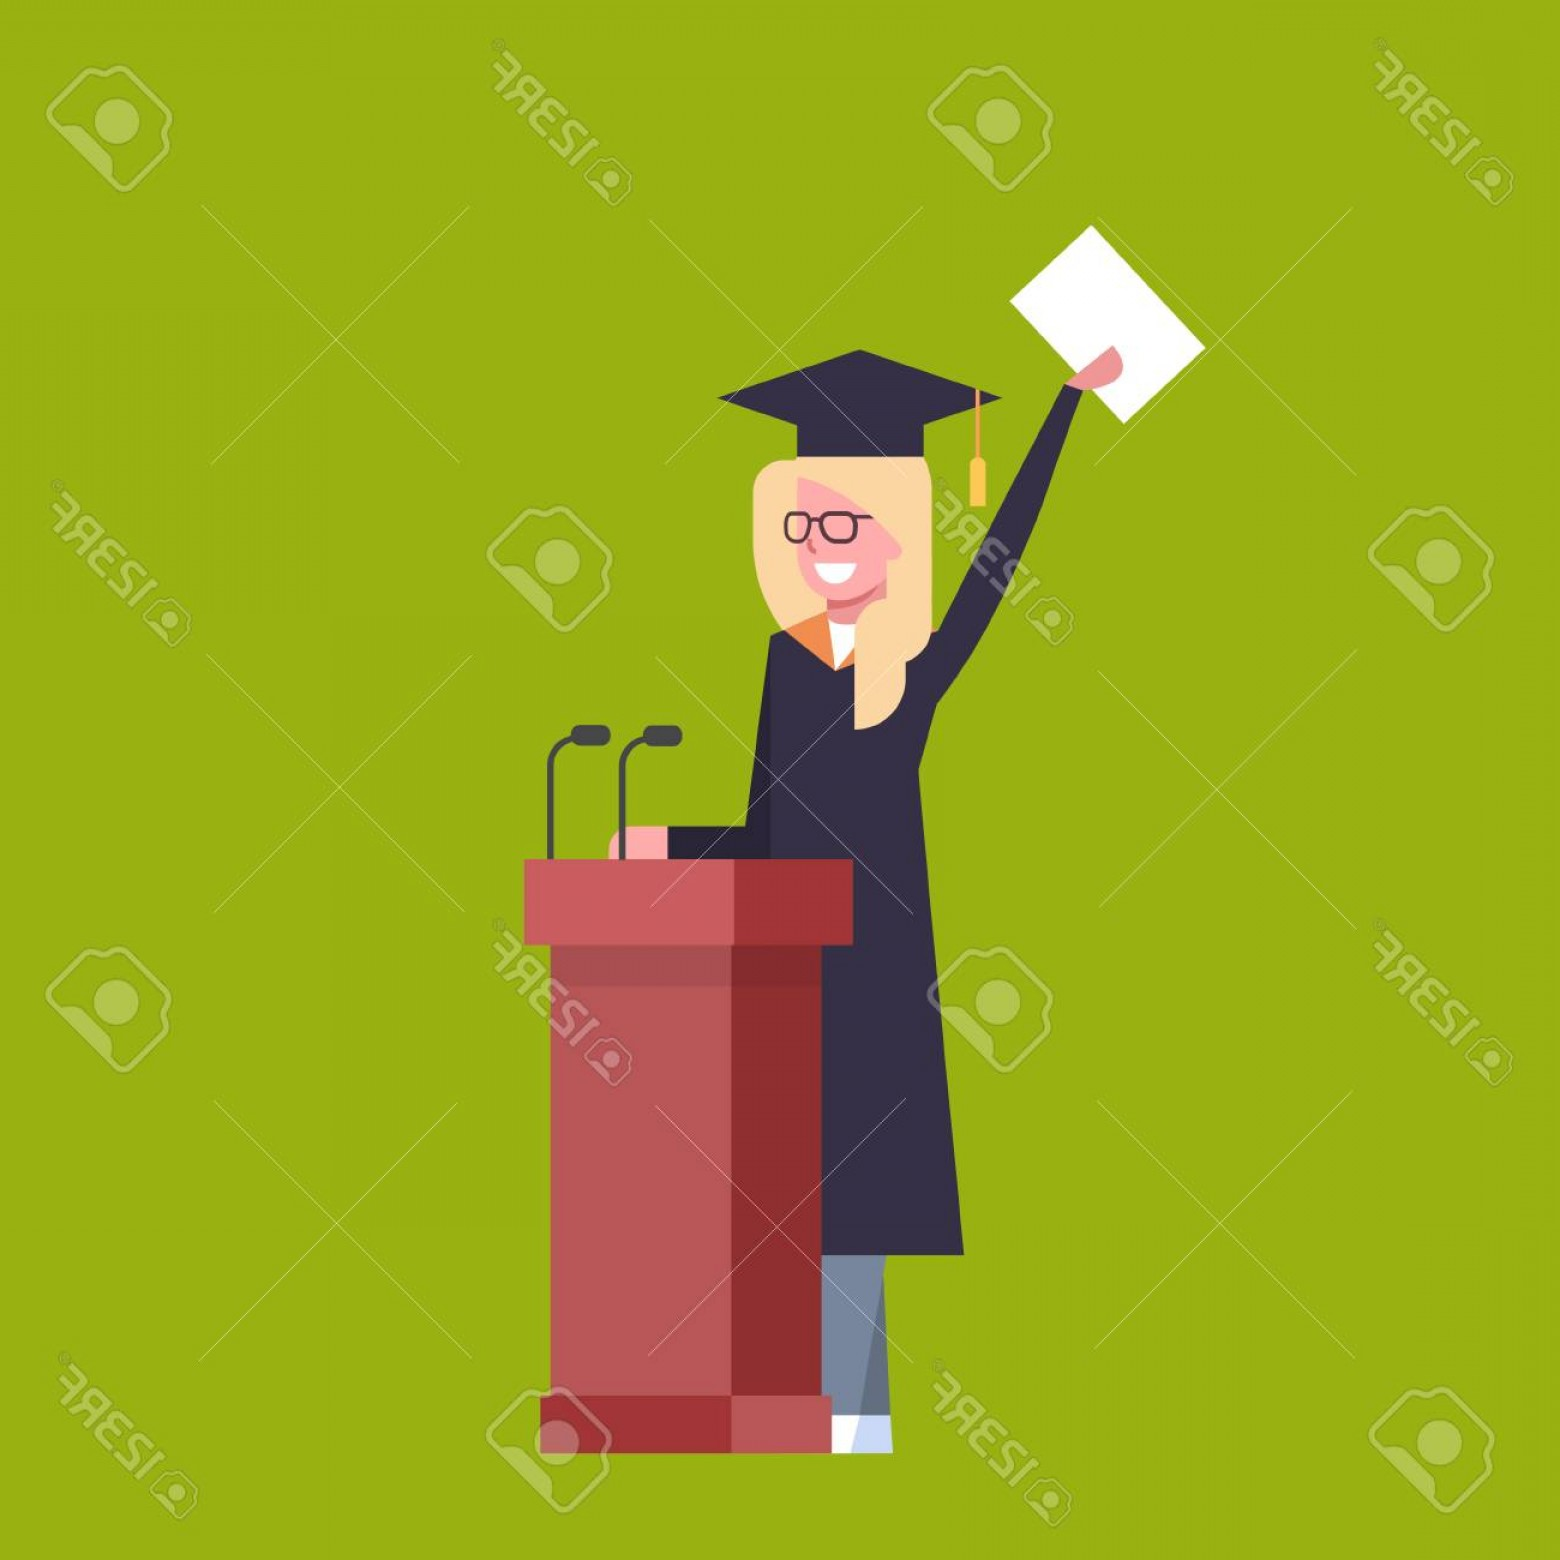 Standing Diploma Vector: Photostock Vector Happy Girl Student In Graduation Cap And Gown Standing At Tribune Hold Diploma On Green Background F